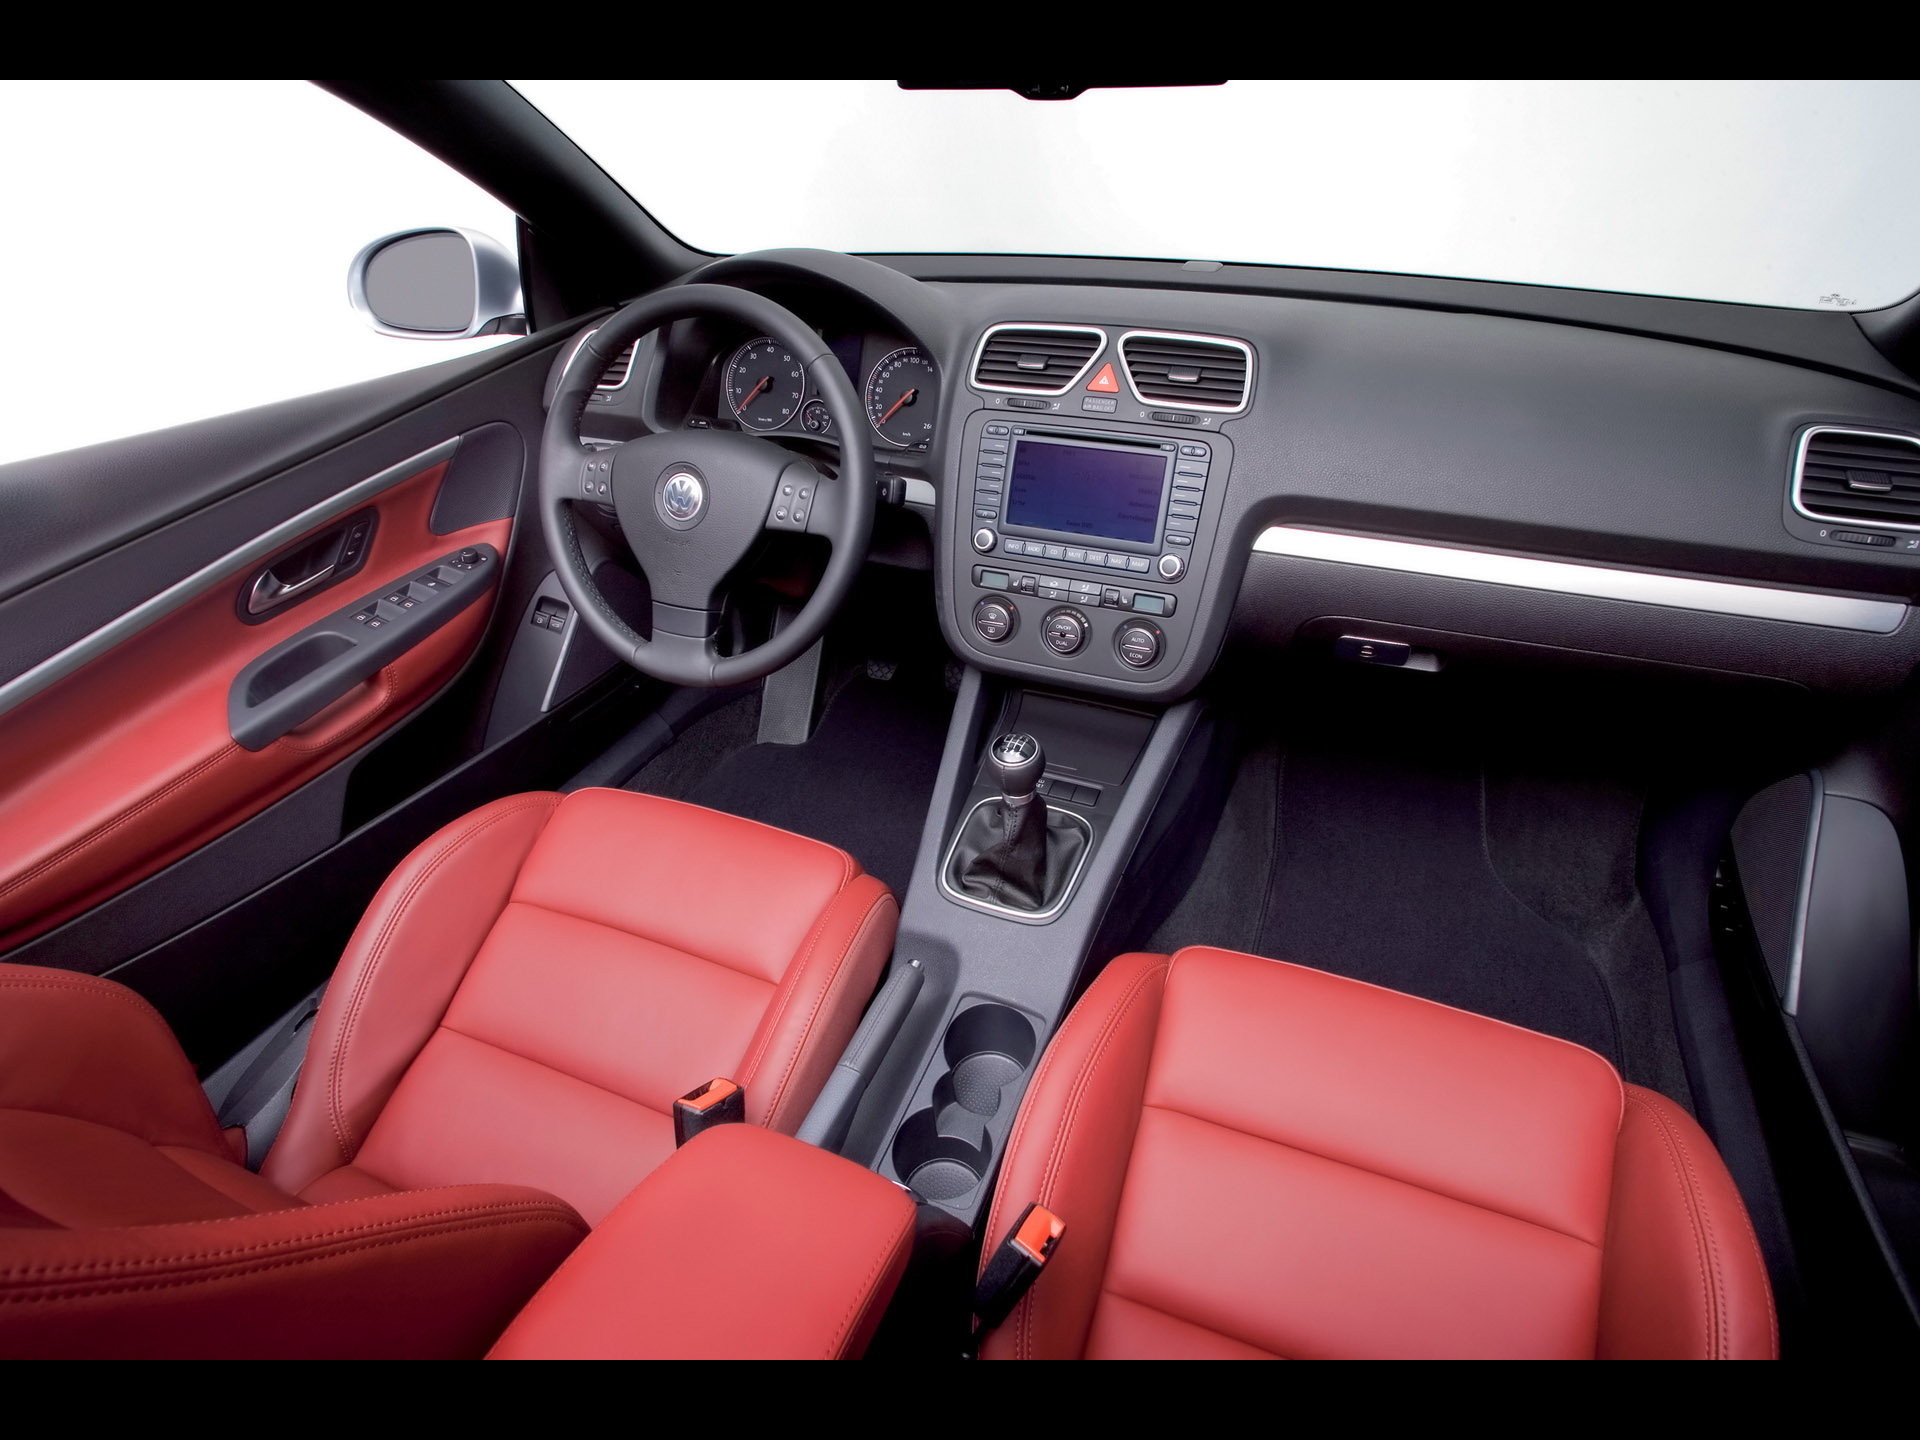 Volkswagen eos photo - 4